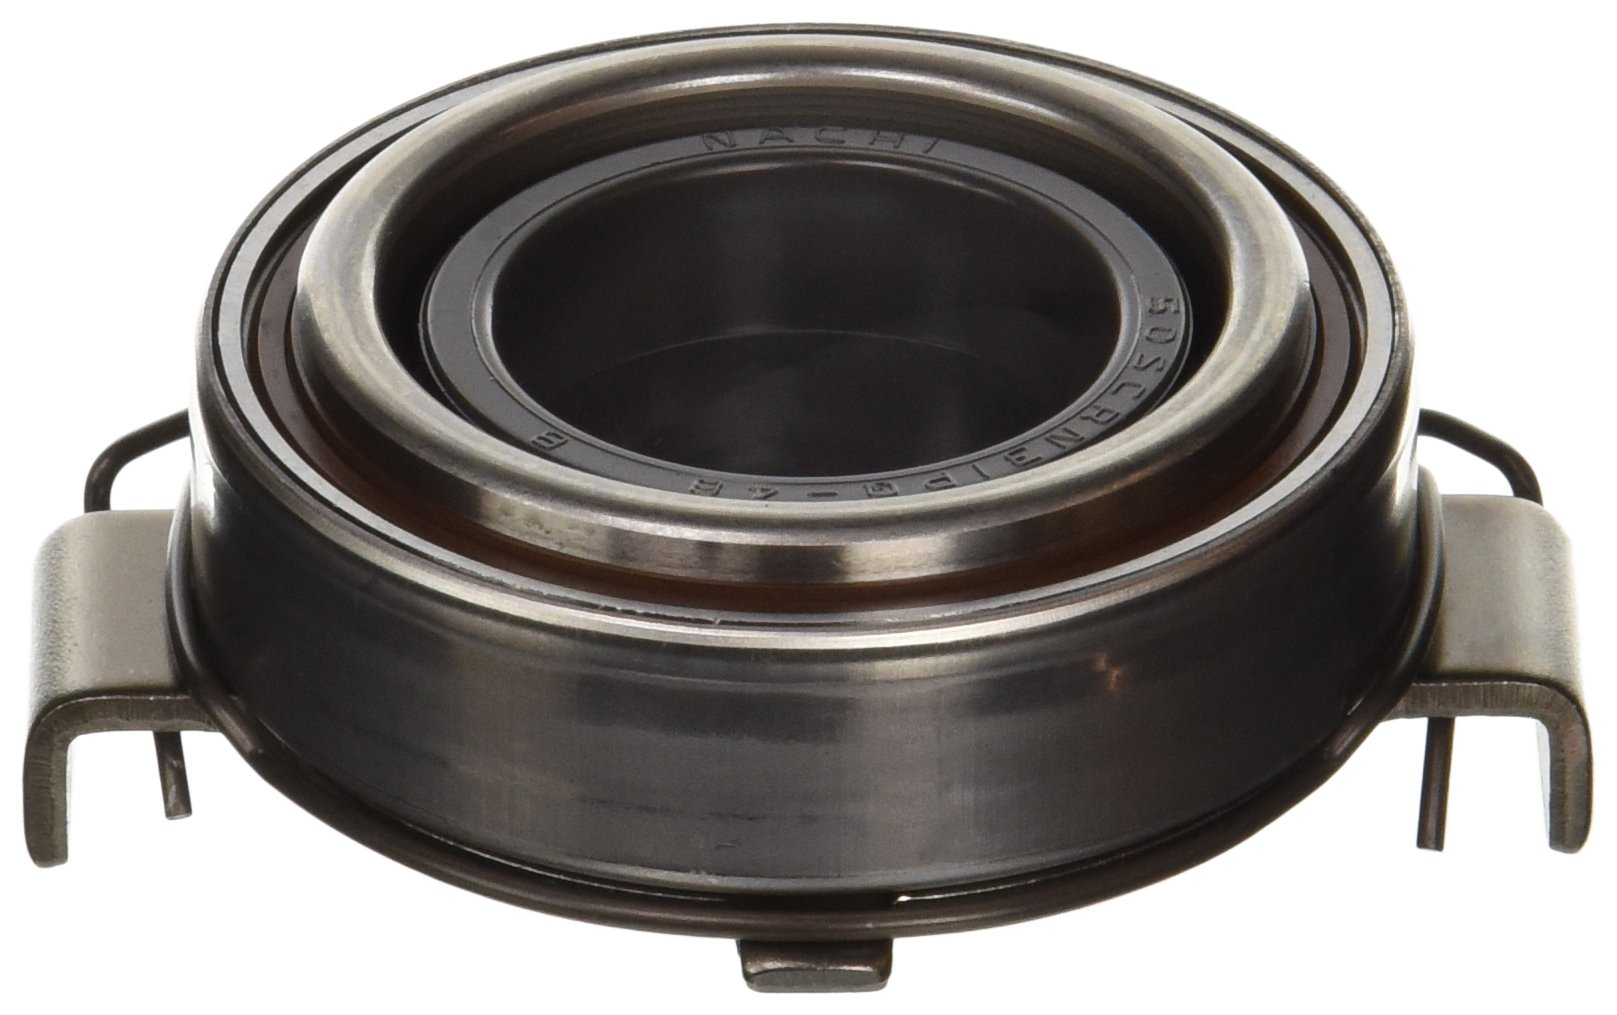 Genuine Toyota 31230-12191 Clutch Bearing Assembly